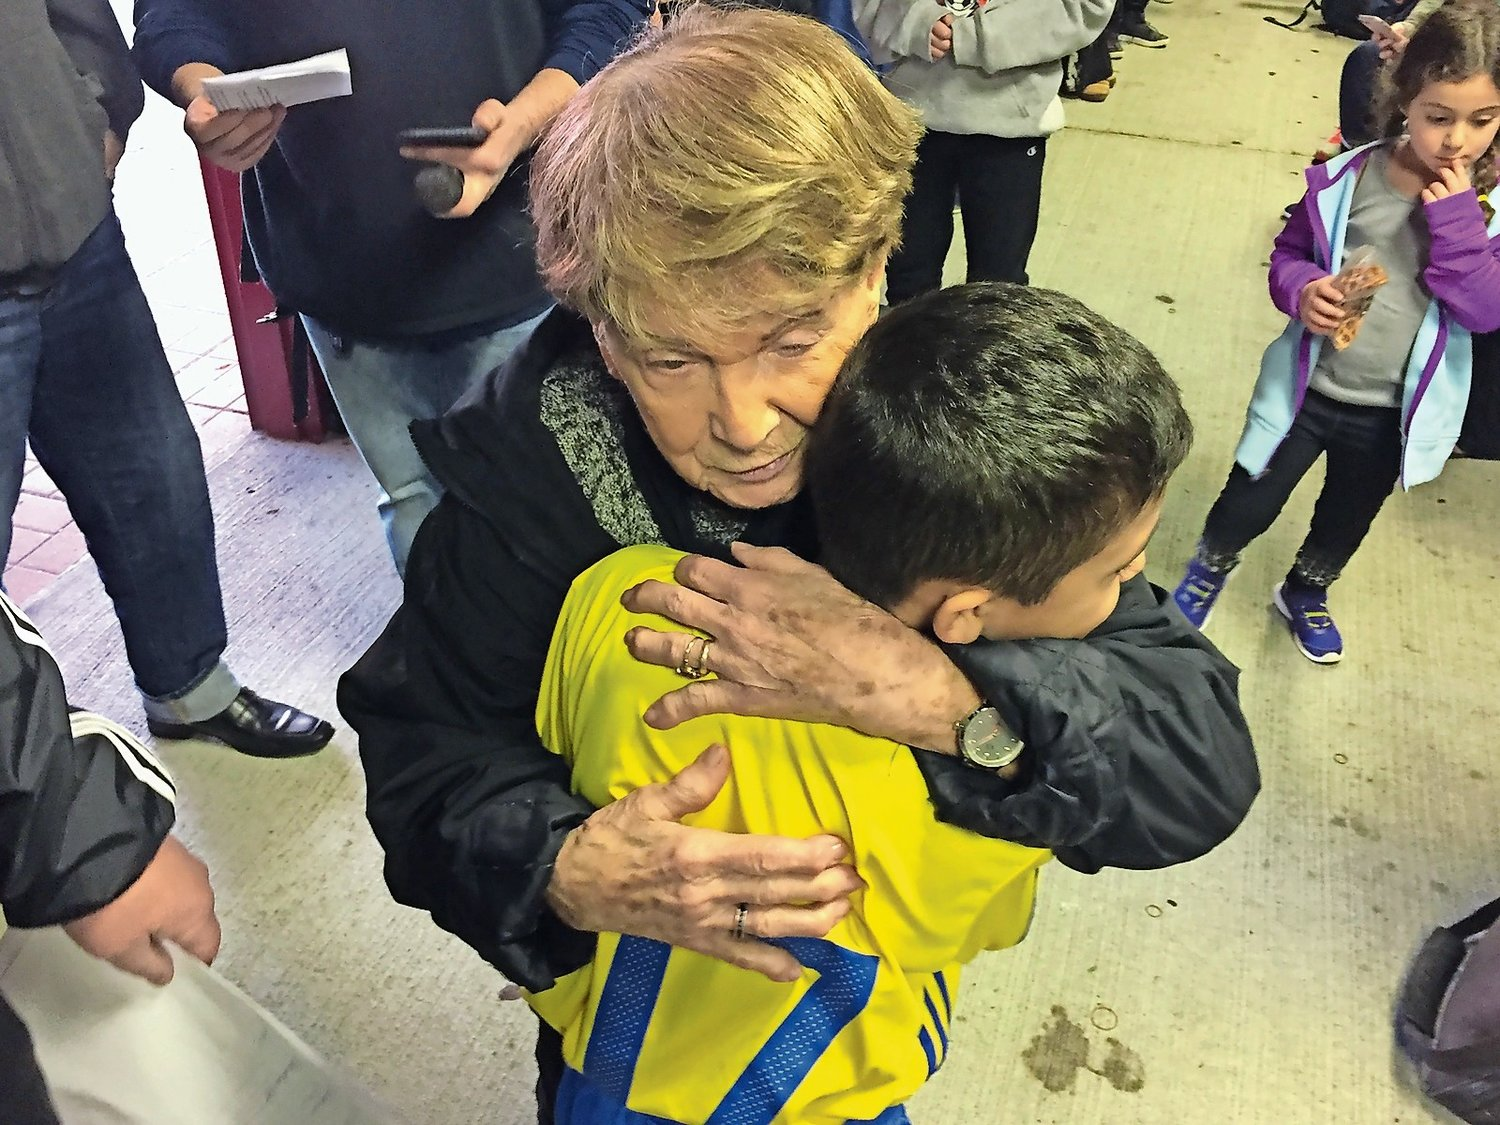 Bessie Lamonica, one of the founders of the first girls' soccer league in Oceanside, died on June 14, at age 93. She dedicated decades to serving boys' and girls' youth soccer teams, volunteering for the Oceanside United Soccer Club and the Long Island Junior Soccer League.